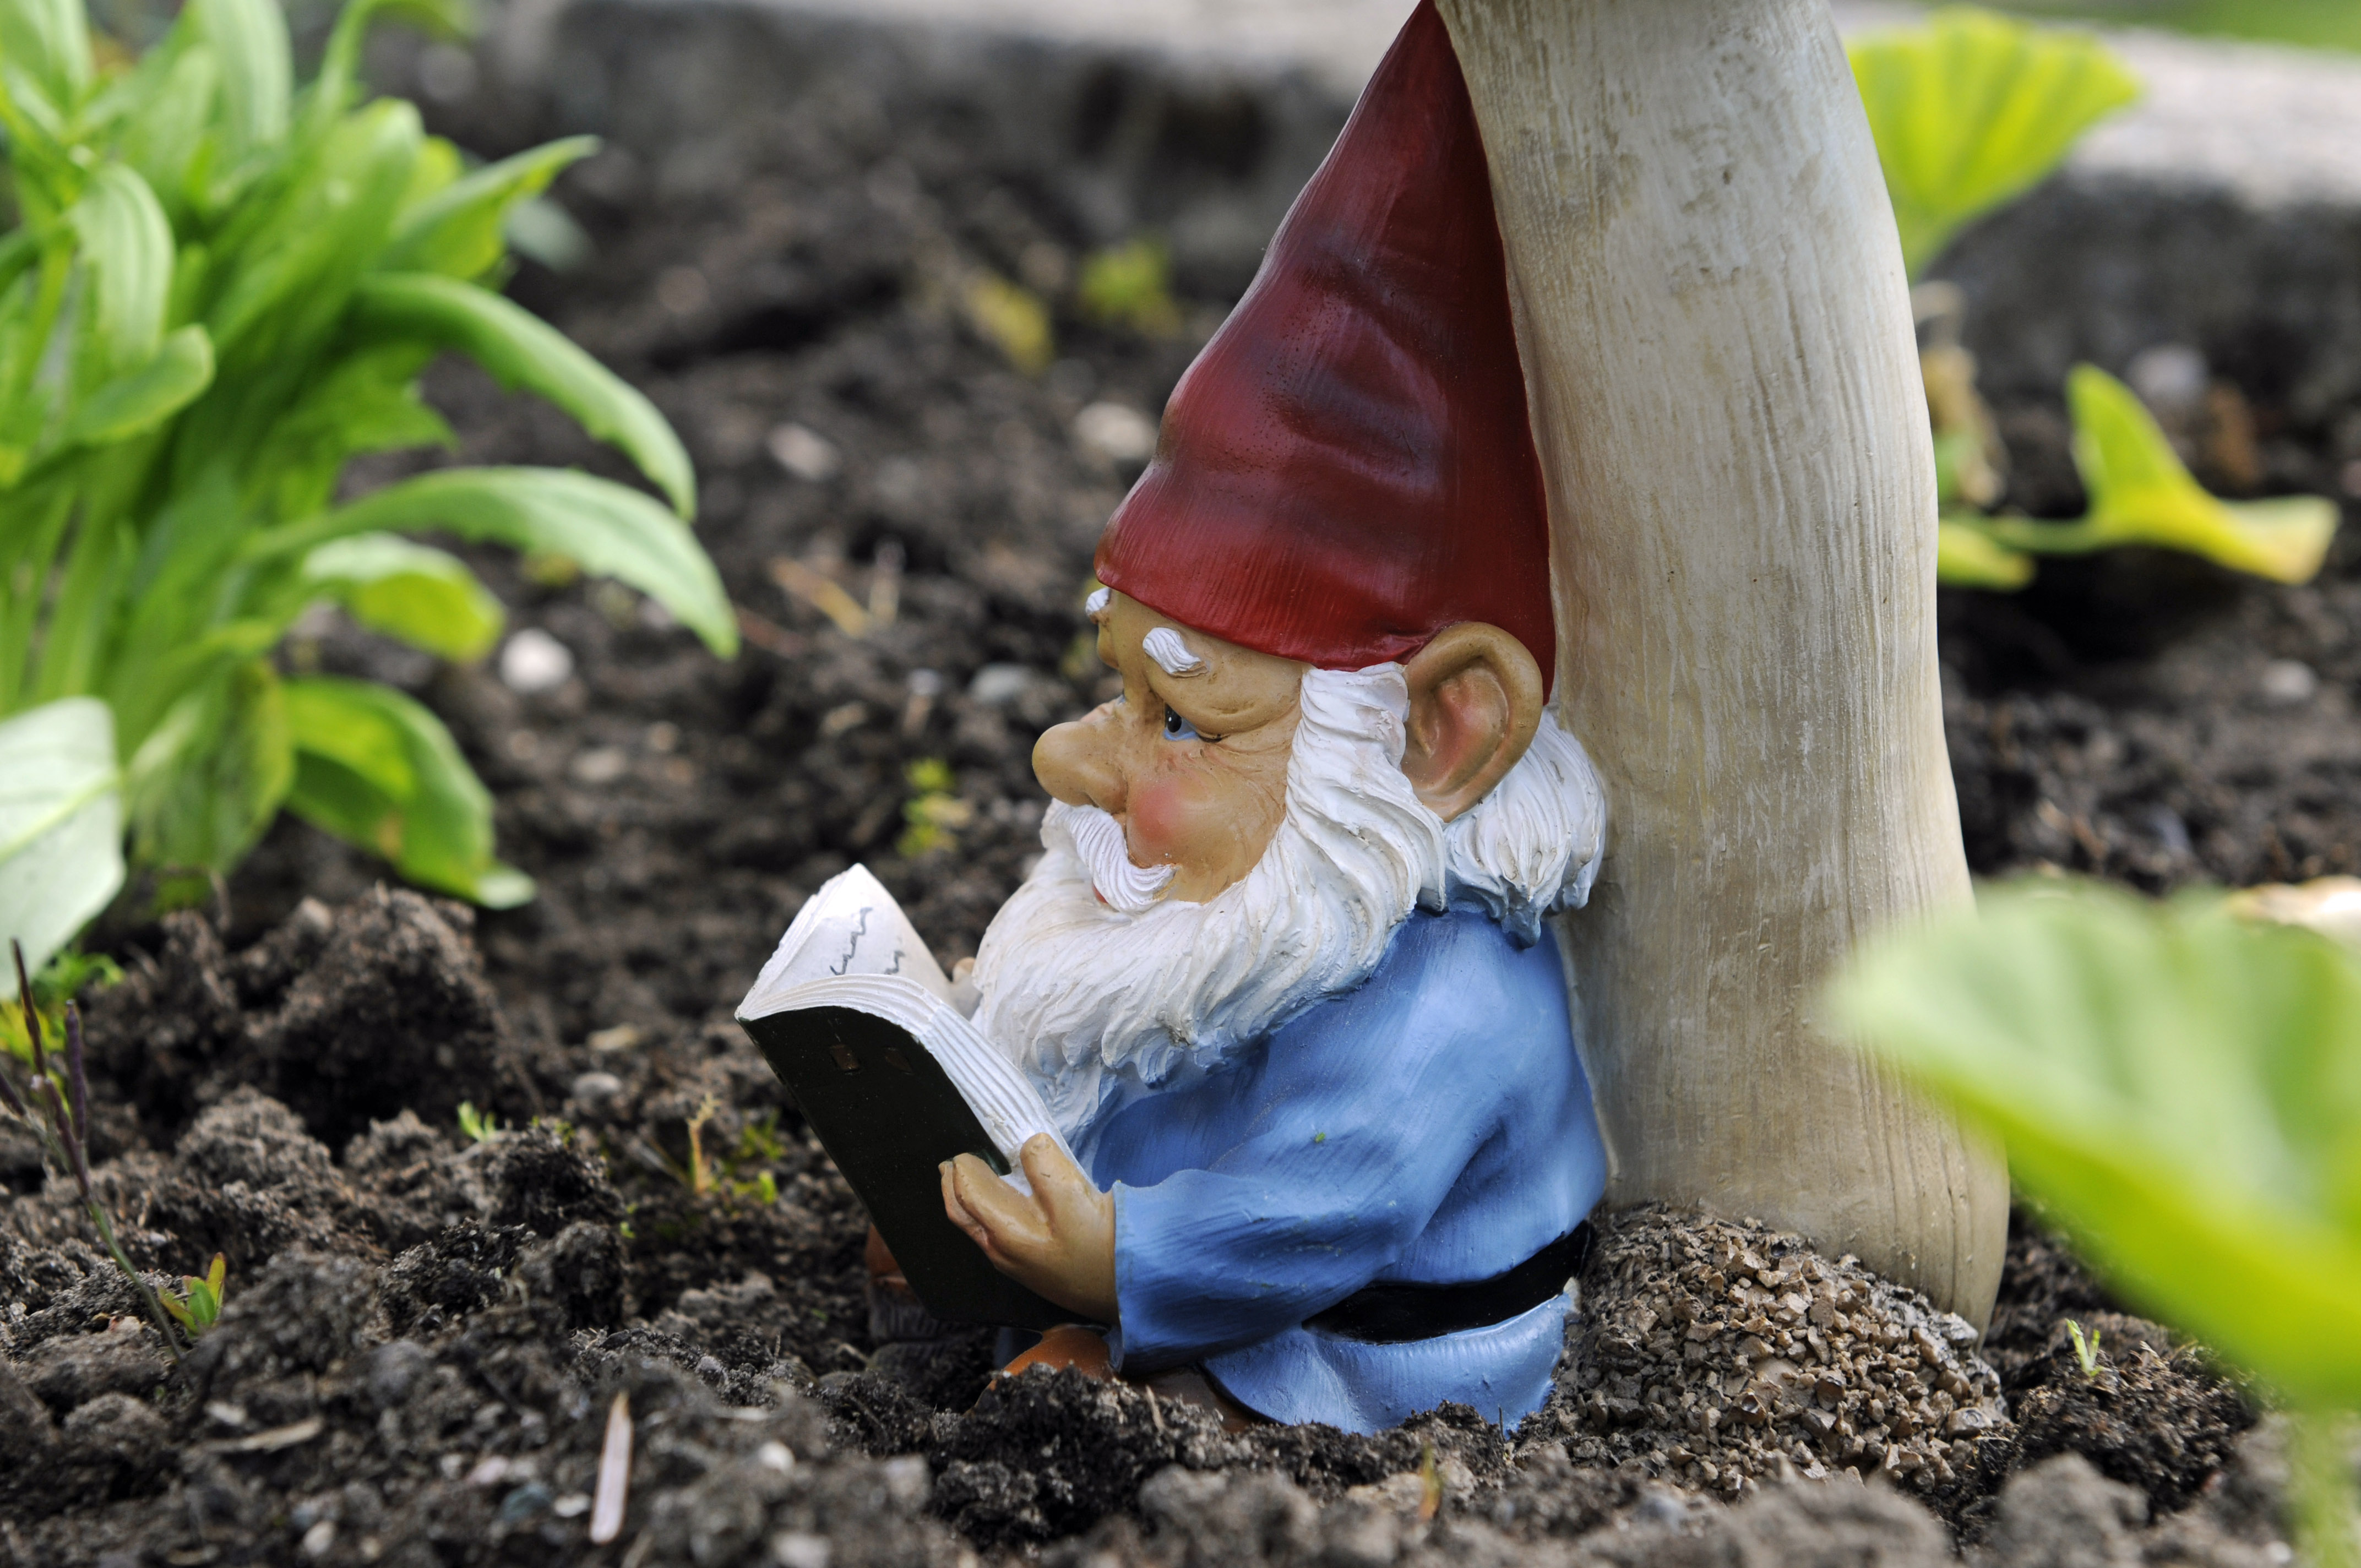 Tremendous You Need An Officer To Report Your Missing Garden Gnome Lollipops Fliers Left On House Lawns Claim To Be From Kkk Small Plastic Garden Gnomes Small Garden Gnomes Uk garden Small Garden Gnome